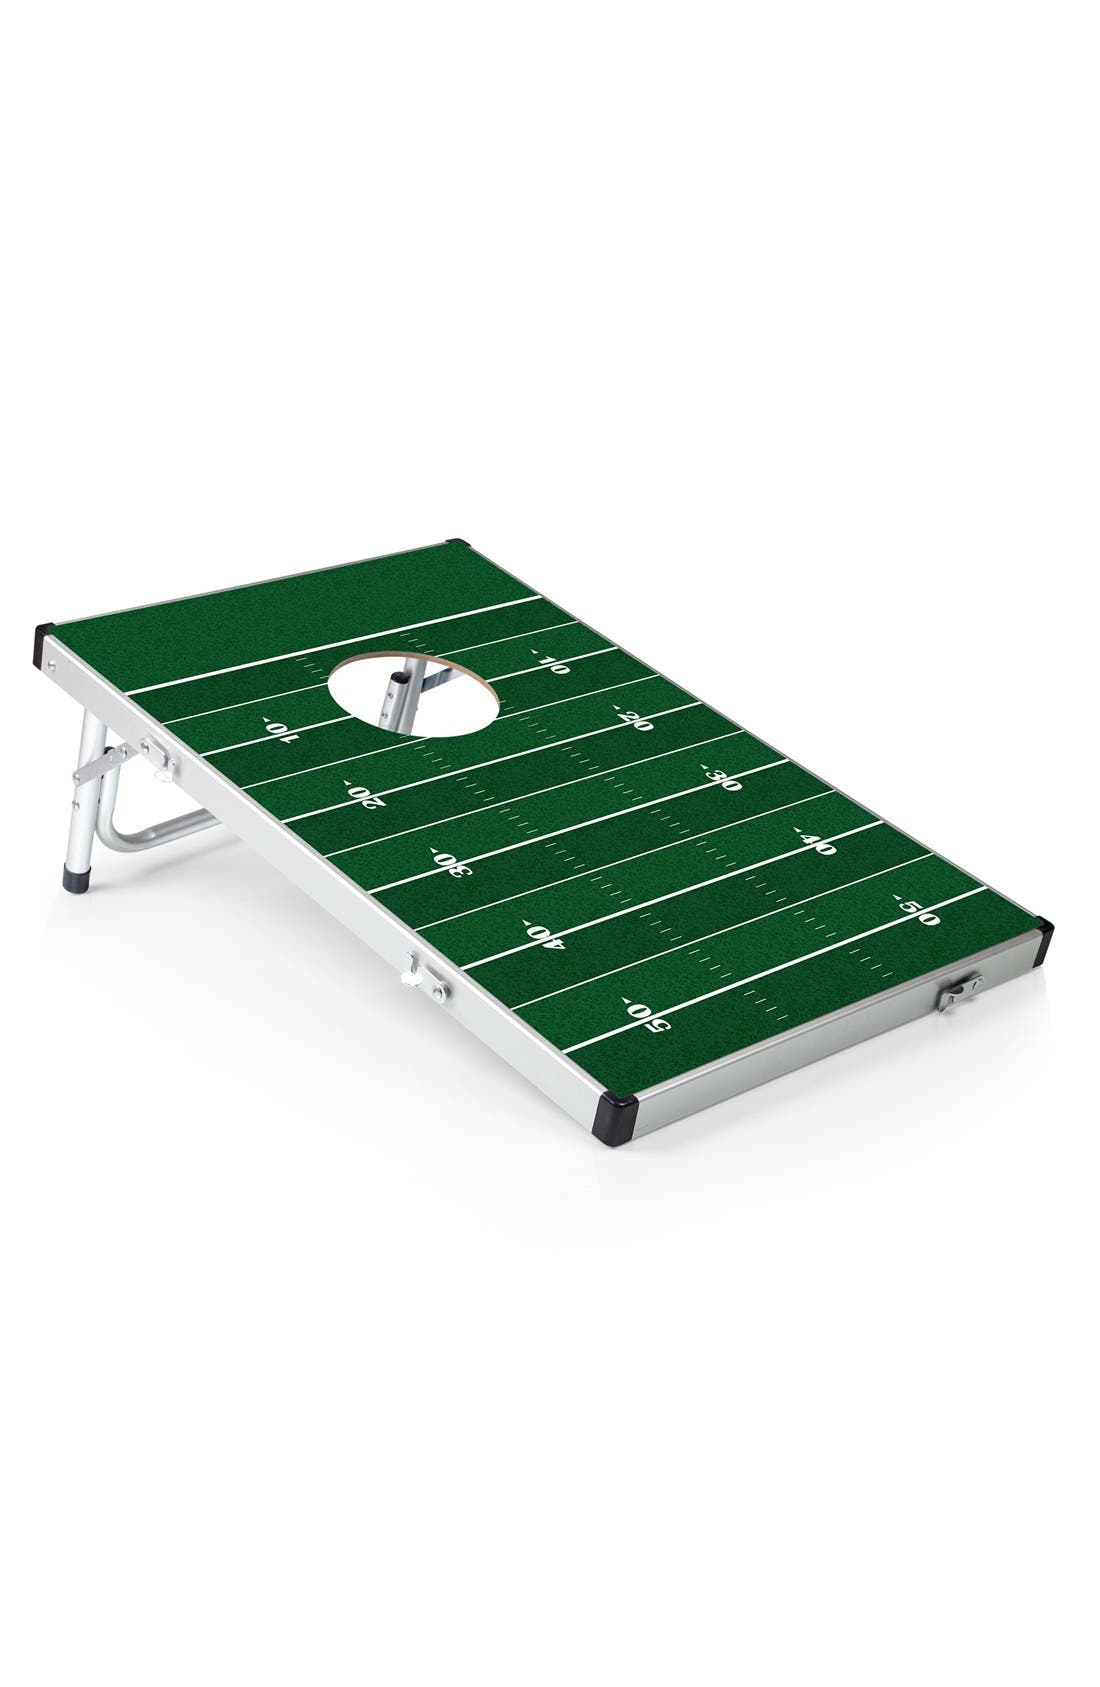 Alternate Image 1 Selected - Picnic Time 'Football' Bean Bag Toss Game